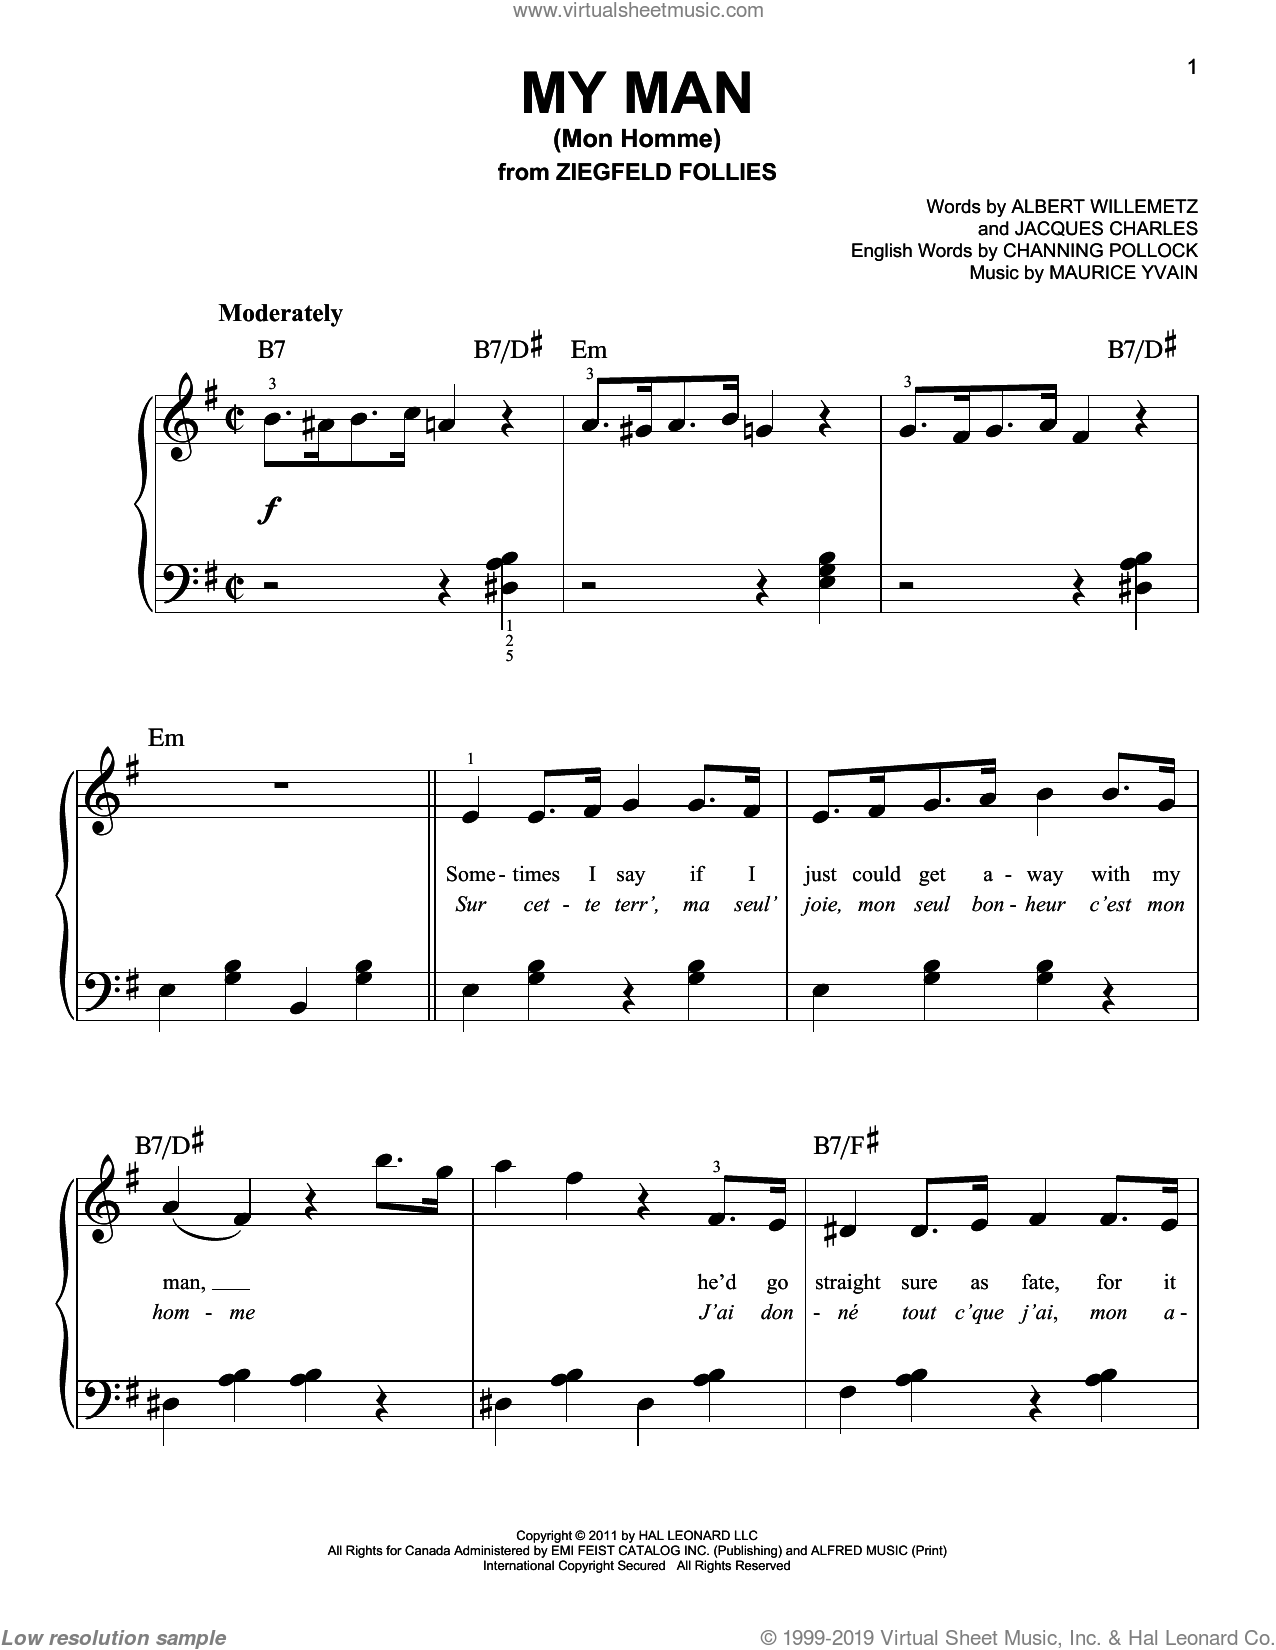 My Man (Mon Homme) sheet music for piano solo by Maurice Yvain, Glee Cast, Albert Willemetz, Channing Pollock, Jacques Charles and Miscellaneous. Score Image Preview.